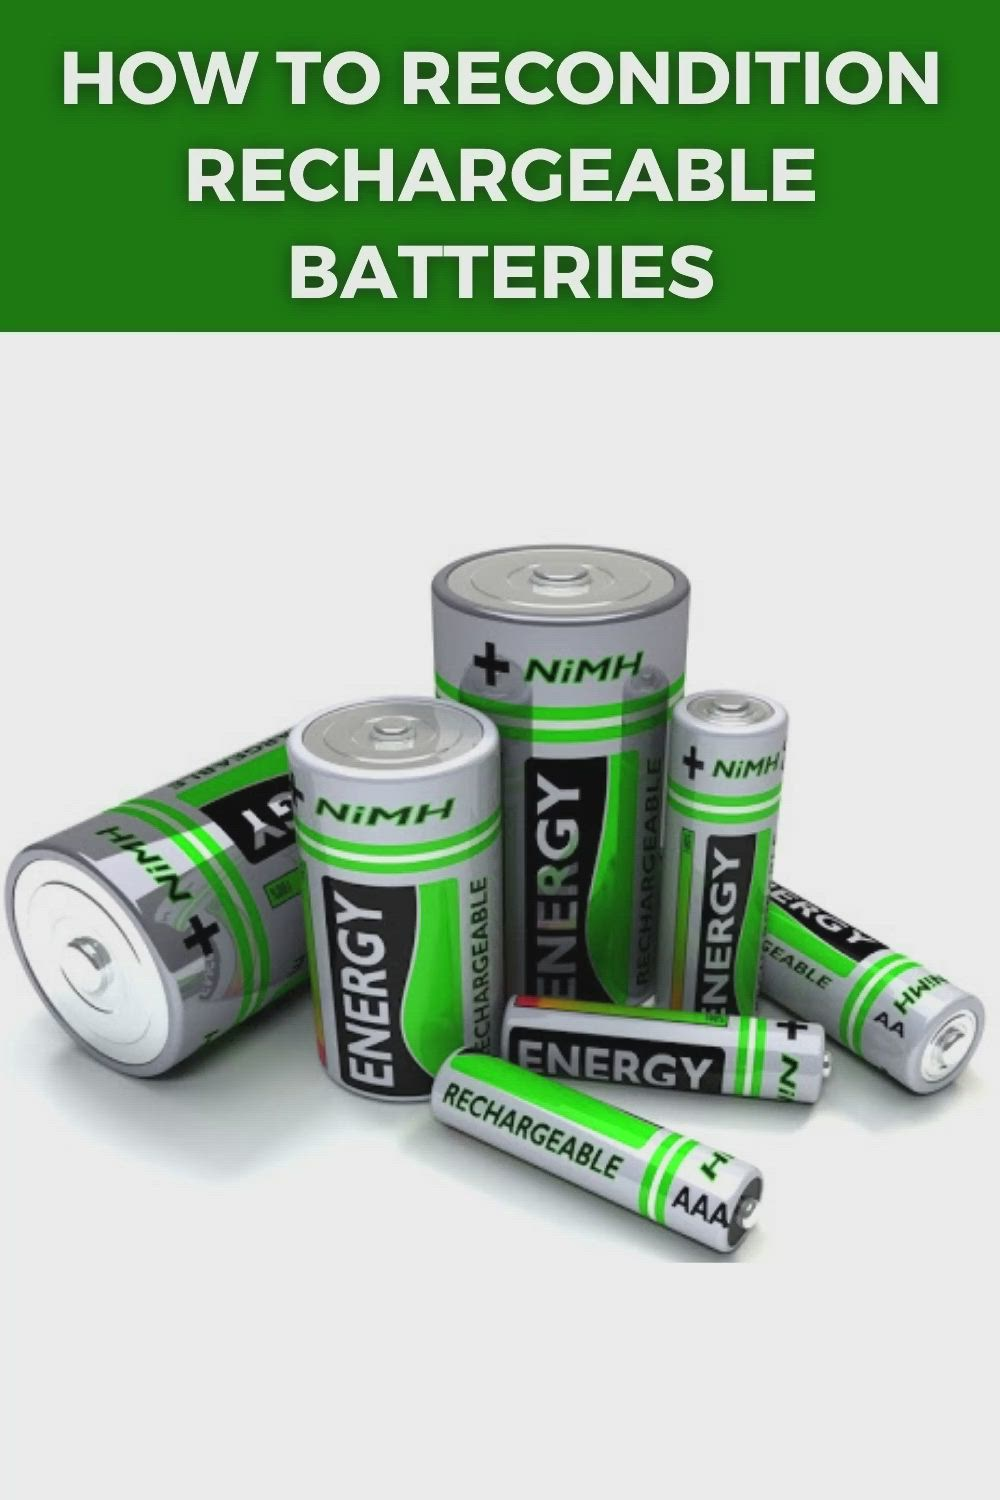 Pin On Battery Reconditioning Methods